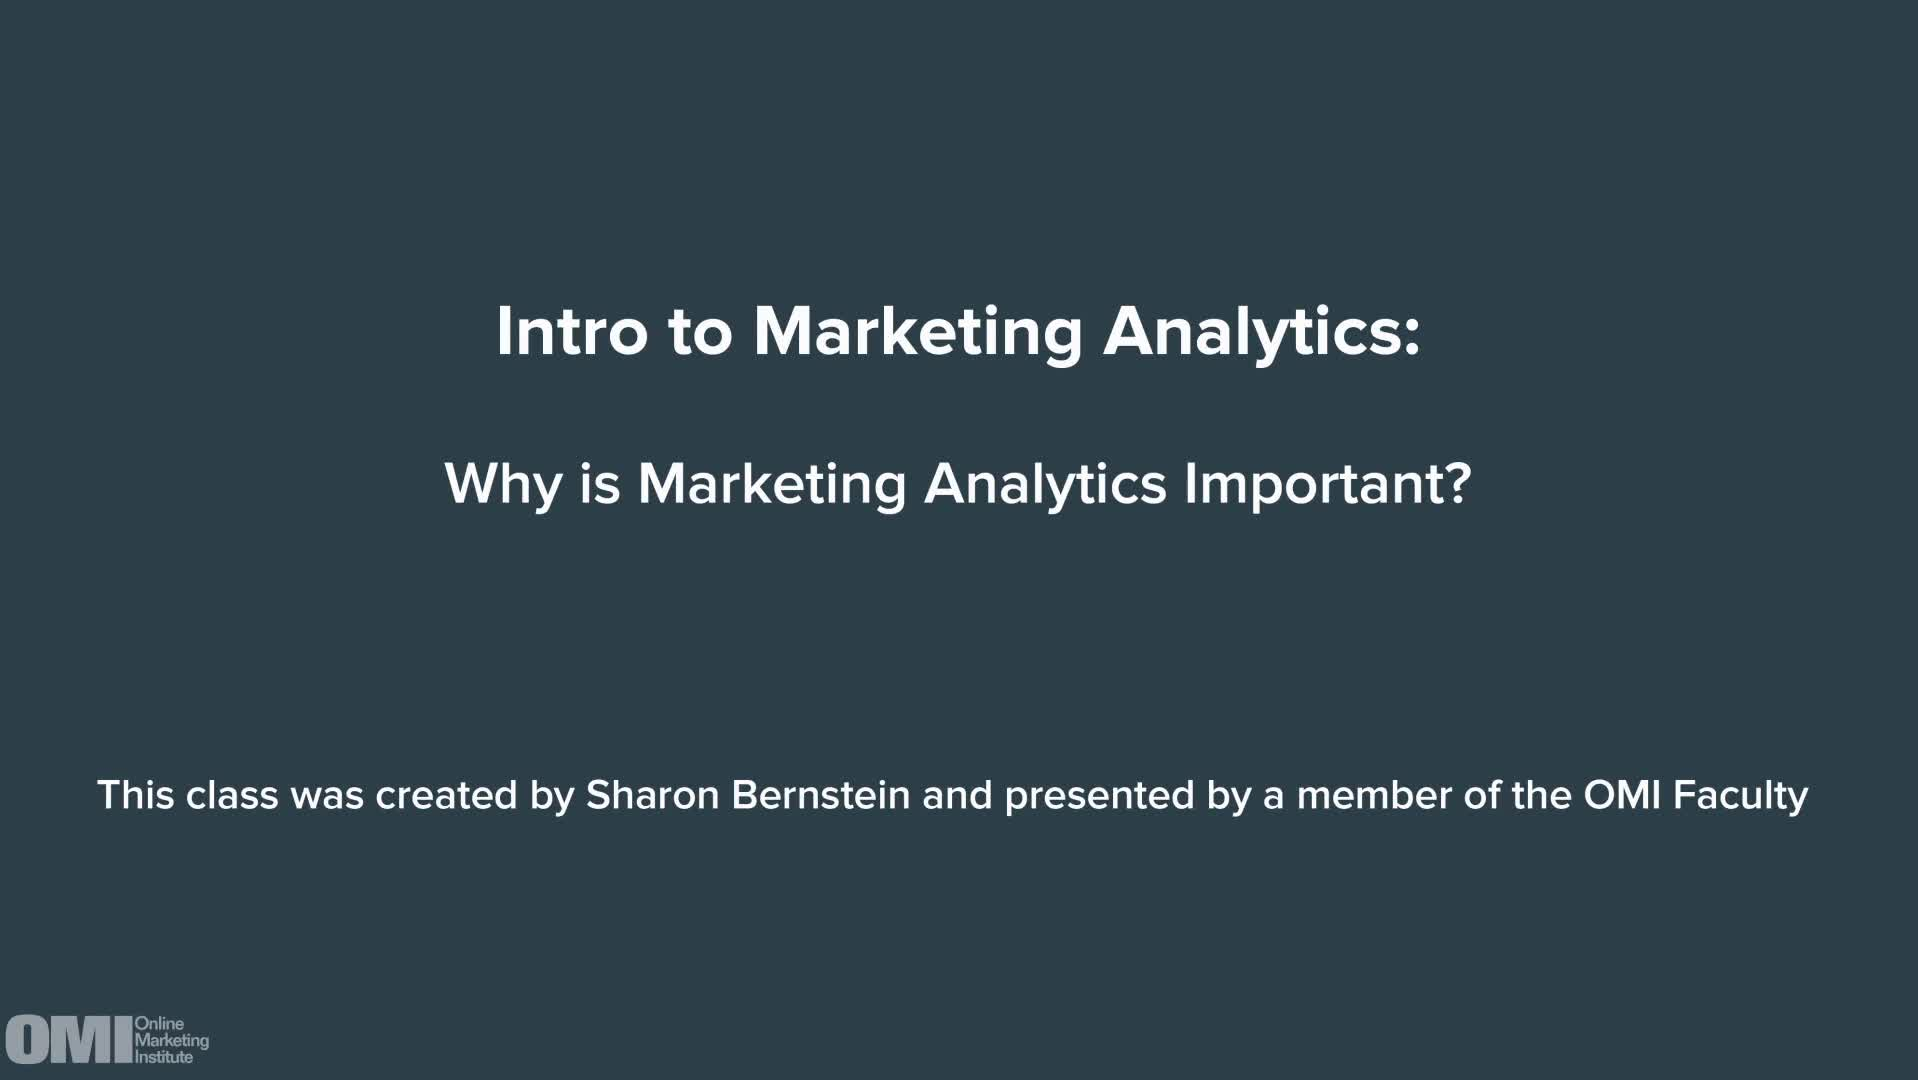 Intro to Marketing Analytics